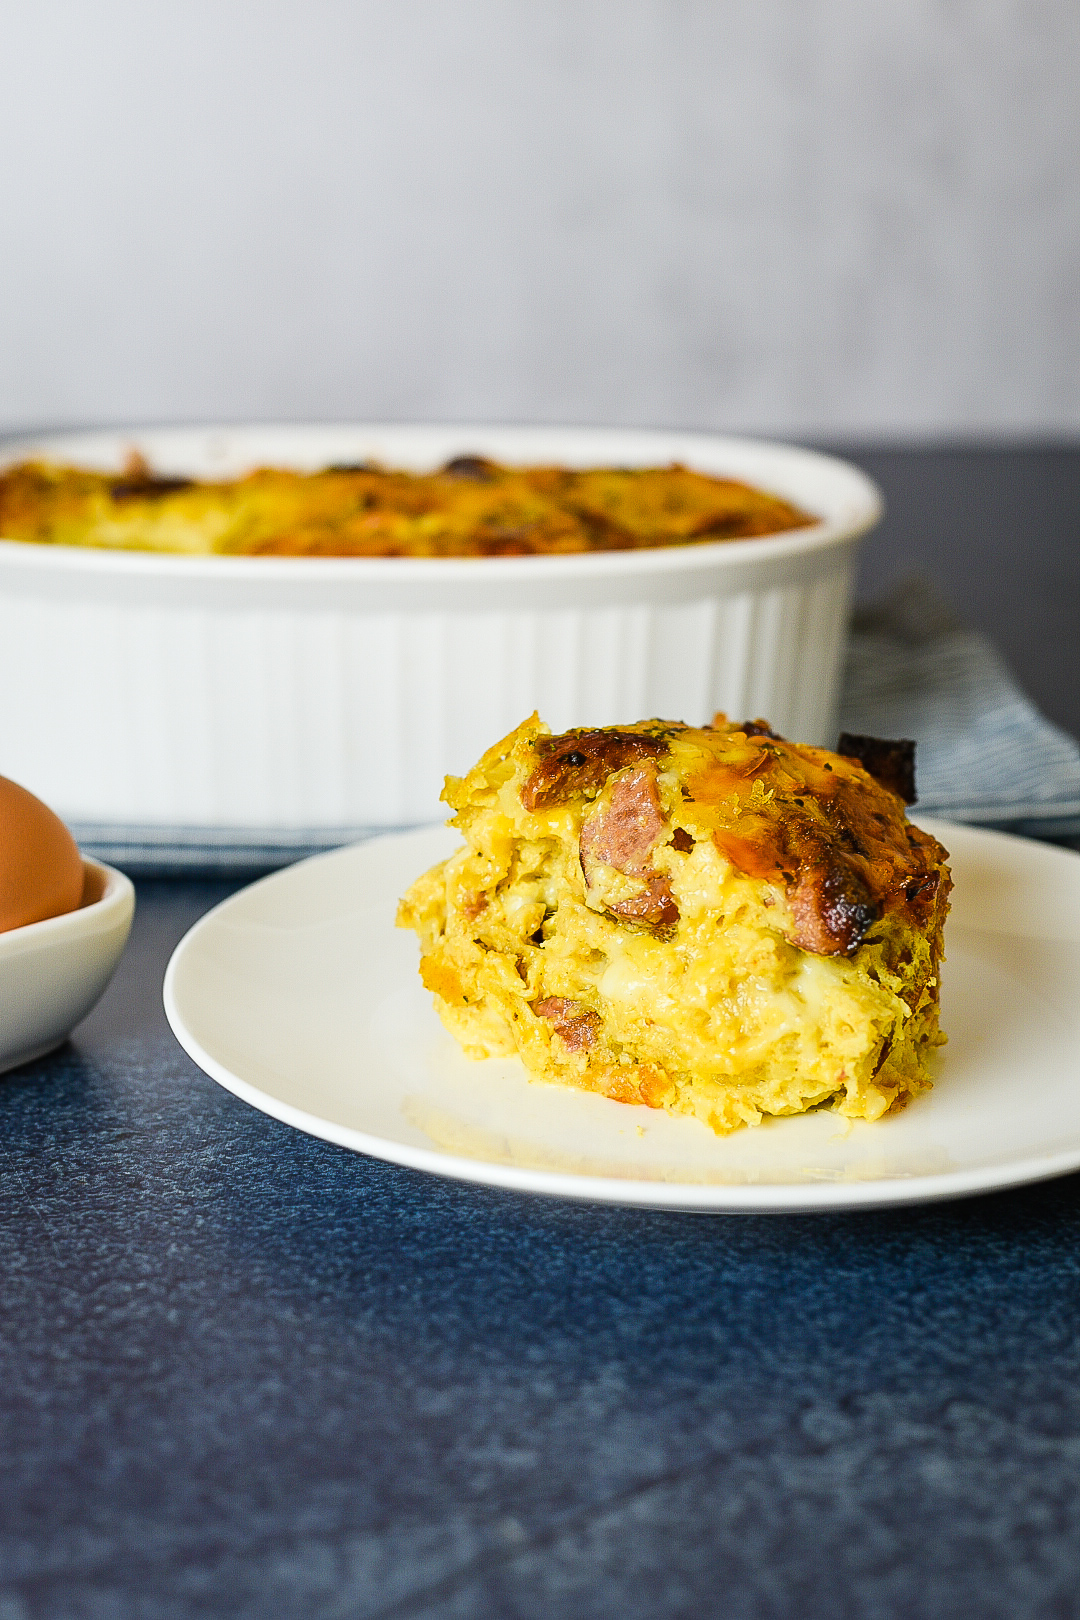 Turkey Sausage Hash Brown Breakfast Casserole